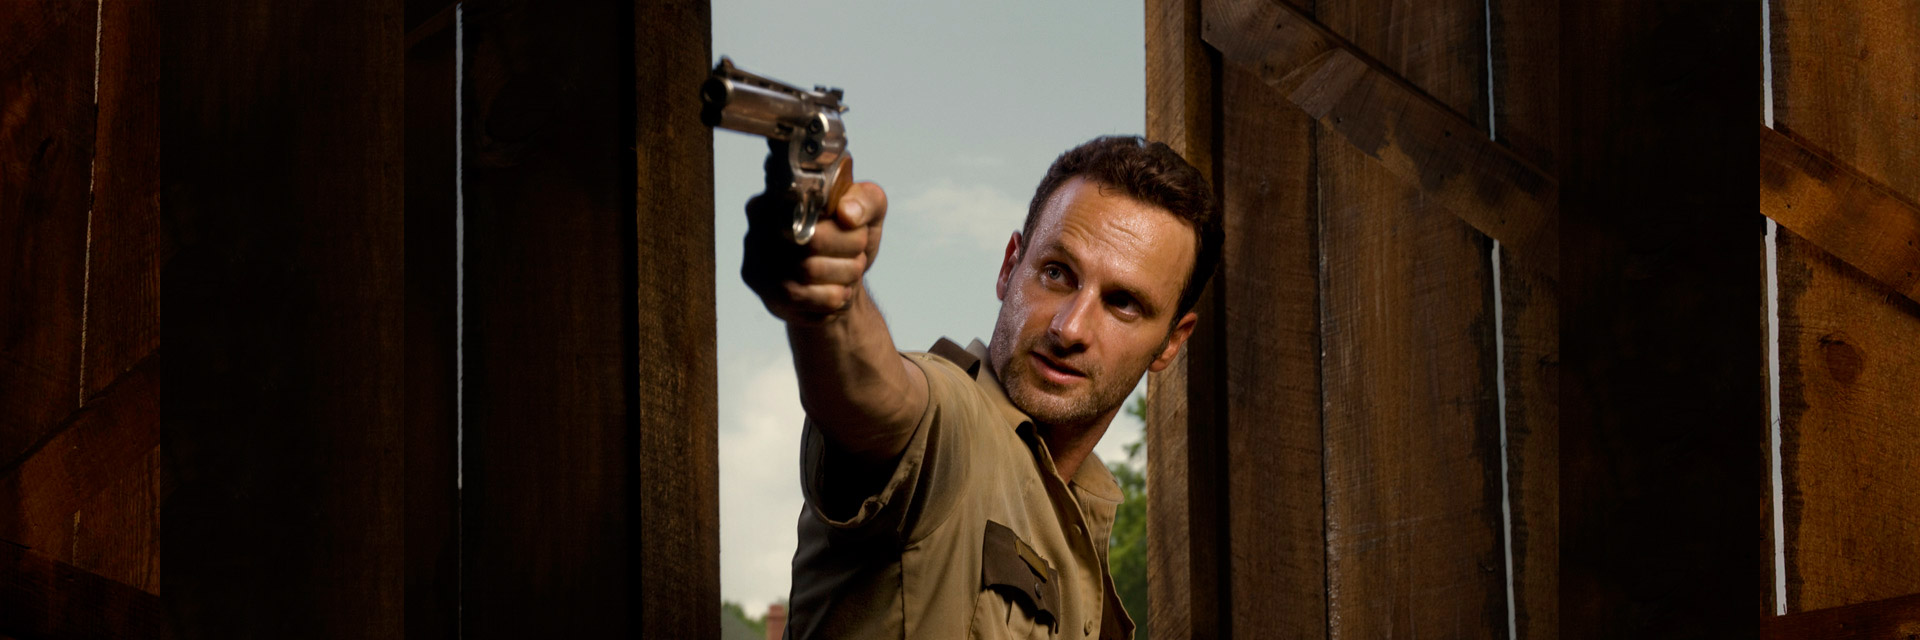 walking dead rick grimes season 2